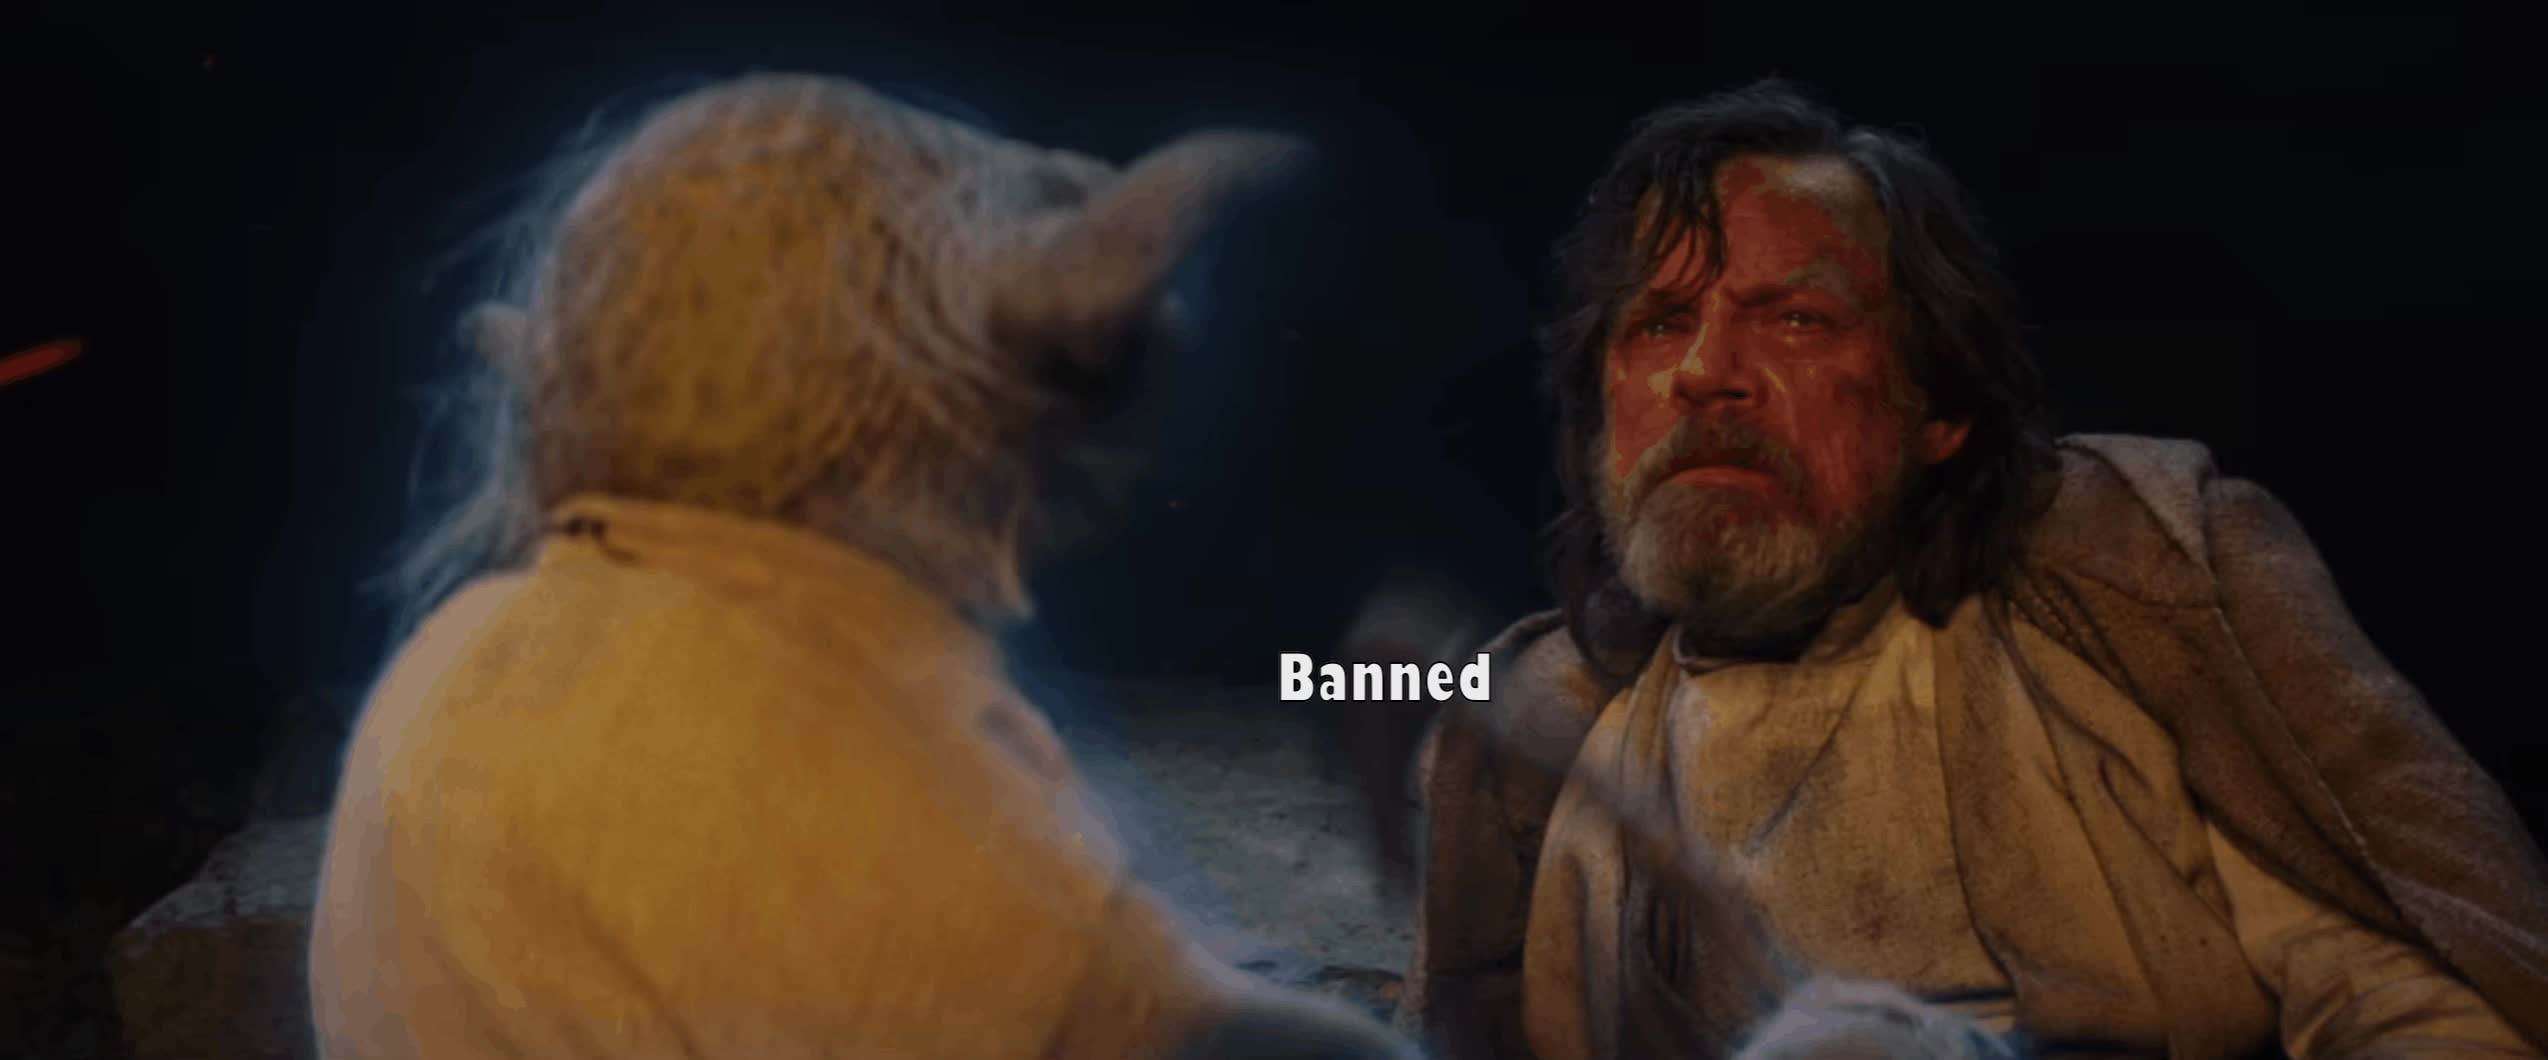 banned GIFs